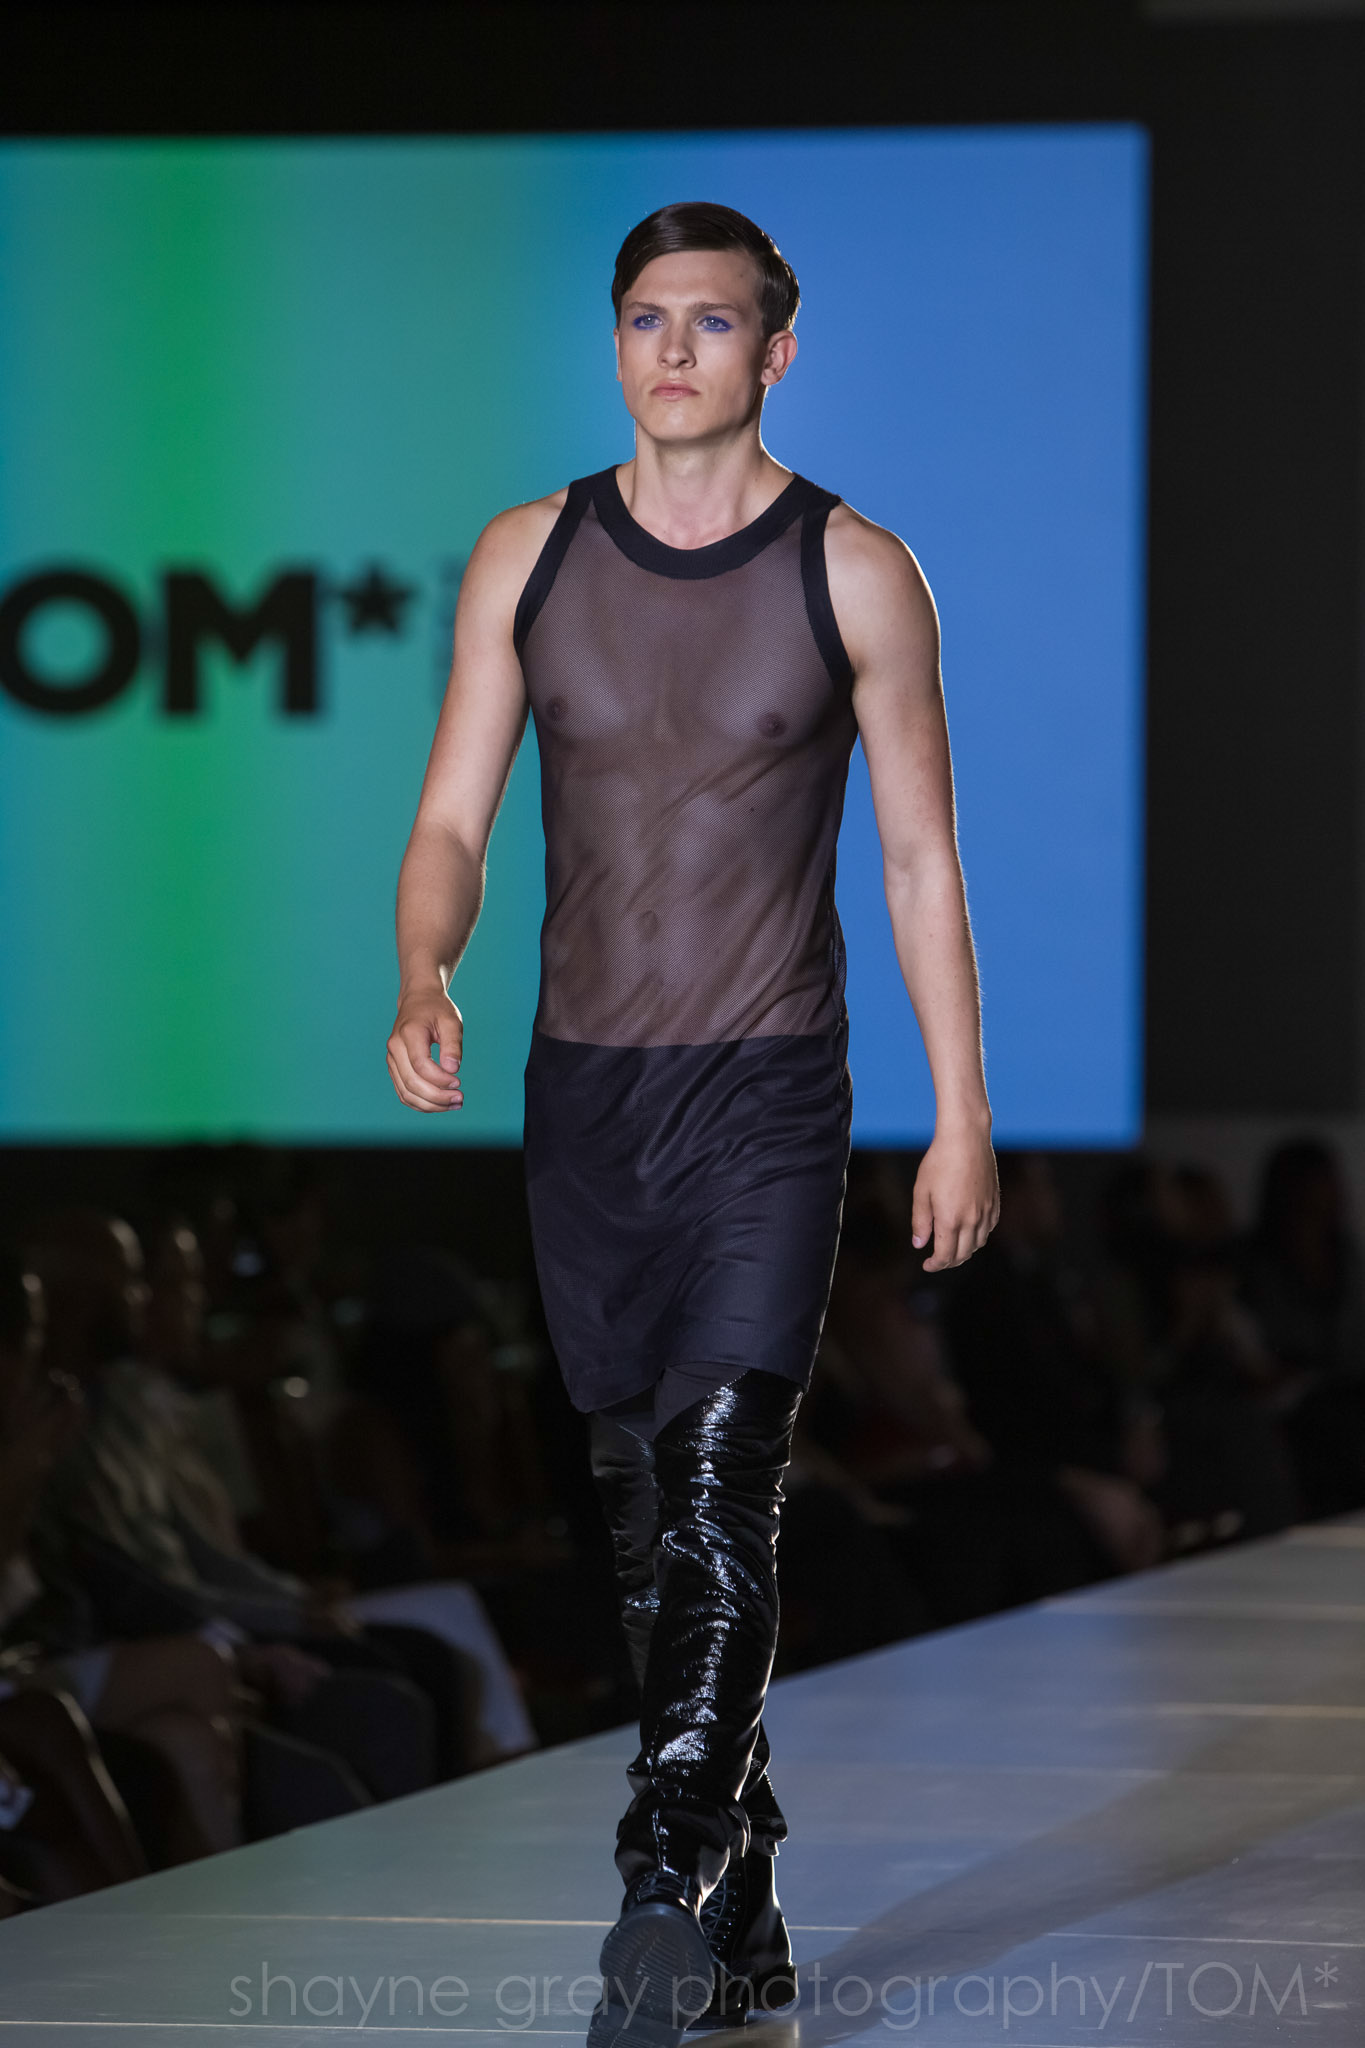 Shayne-Gray-Toronto-men's-fashion_week-TOM-diodati-6128.jpg